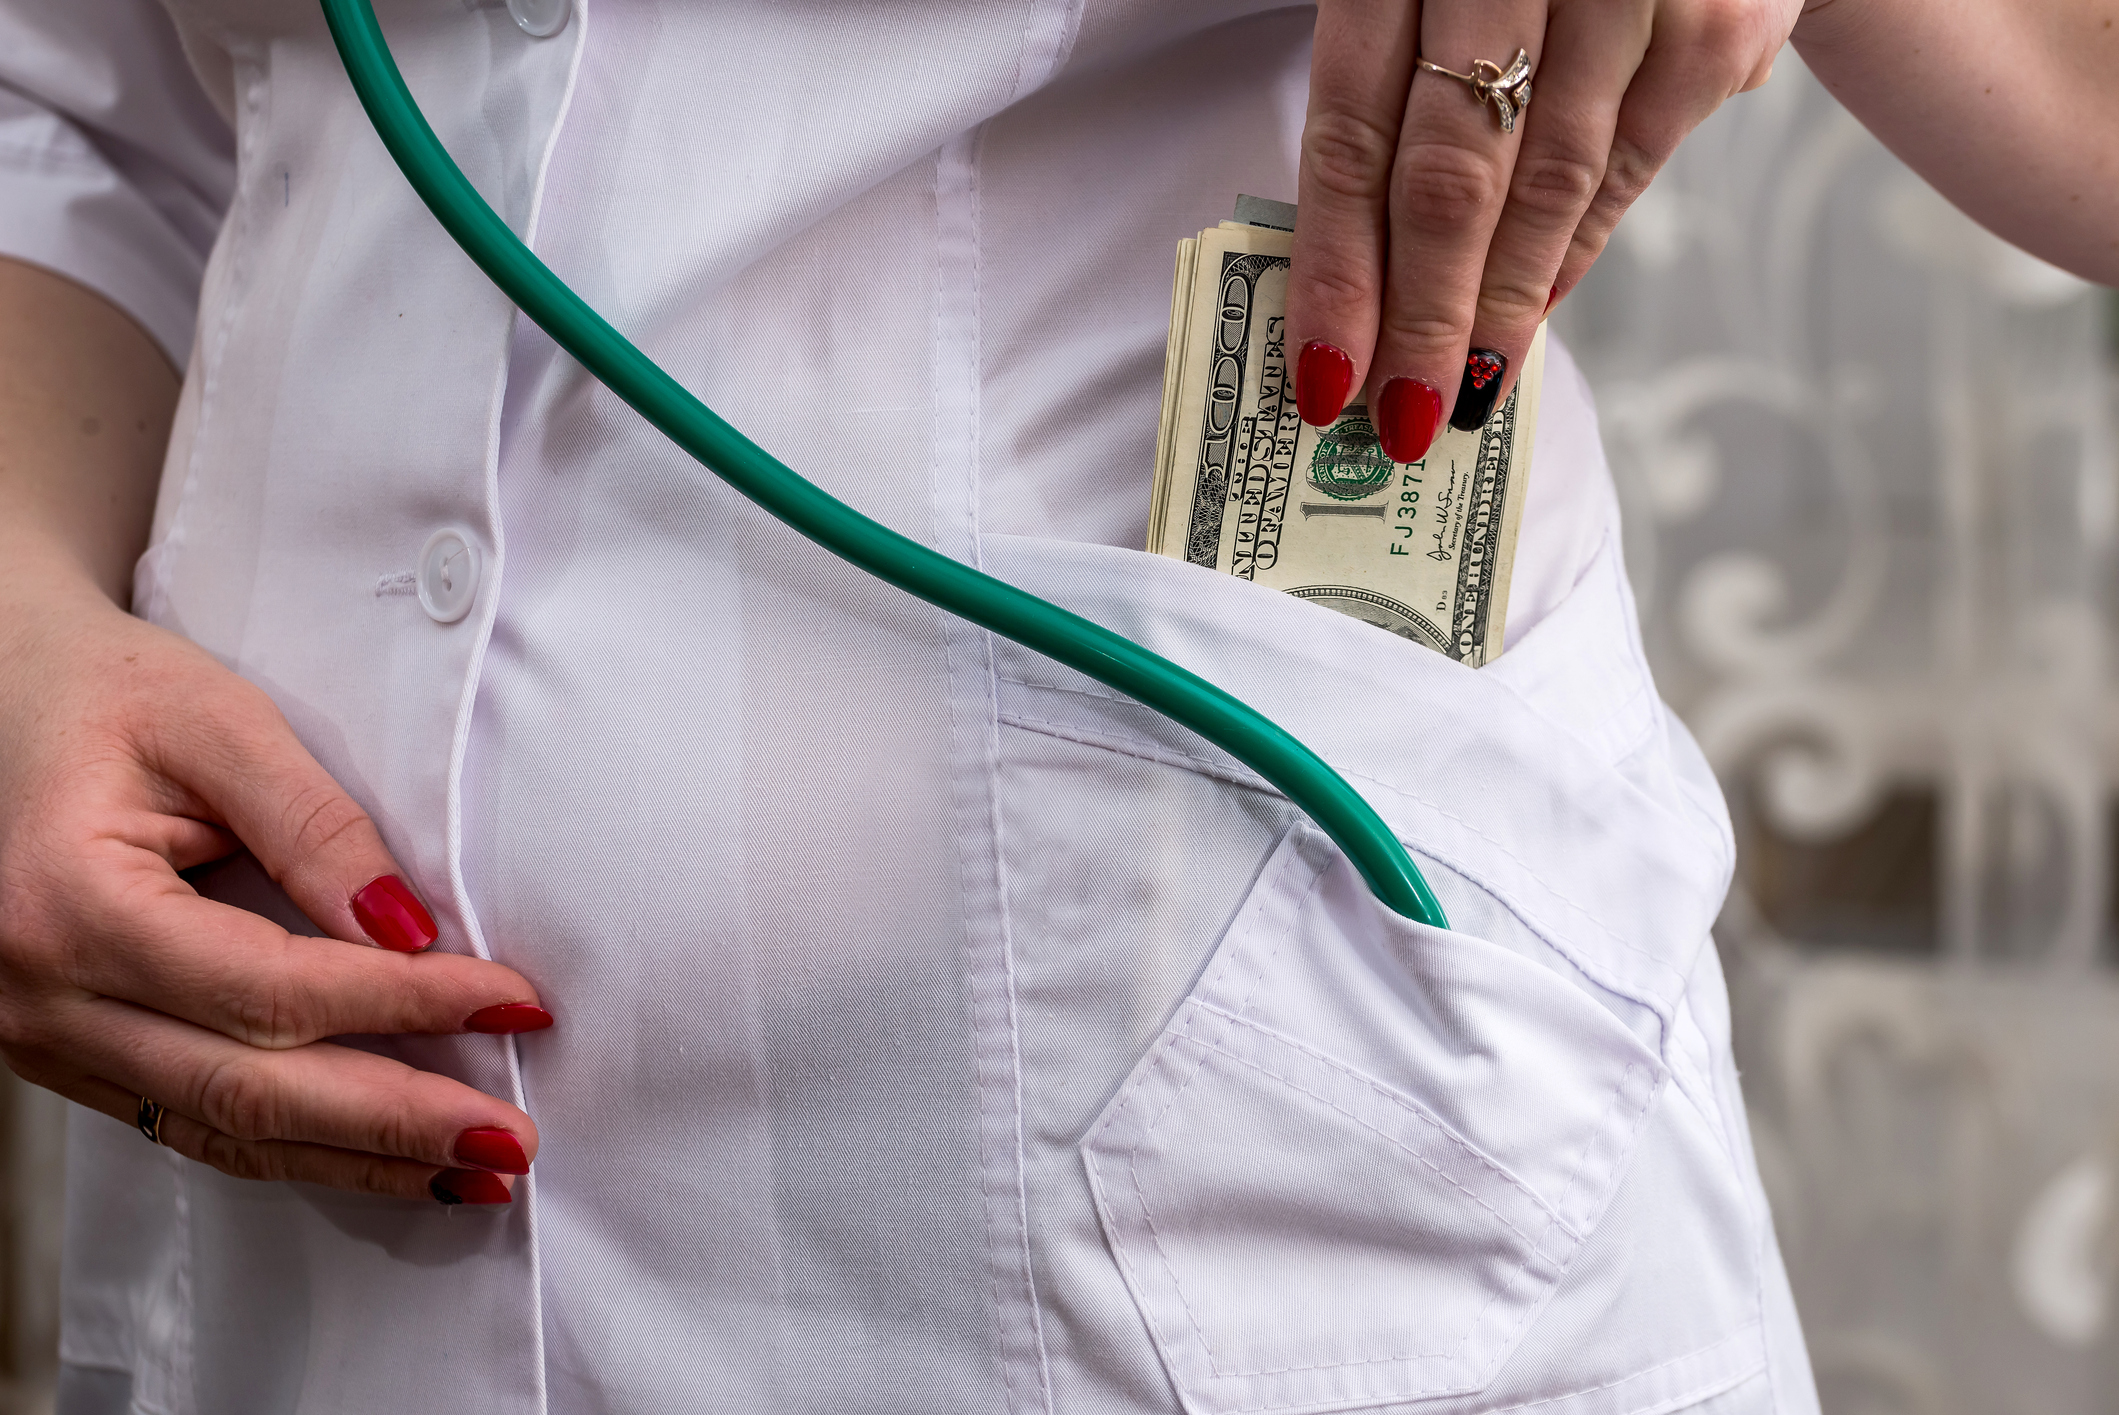 nurse relocation can increase your salary